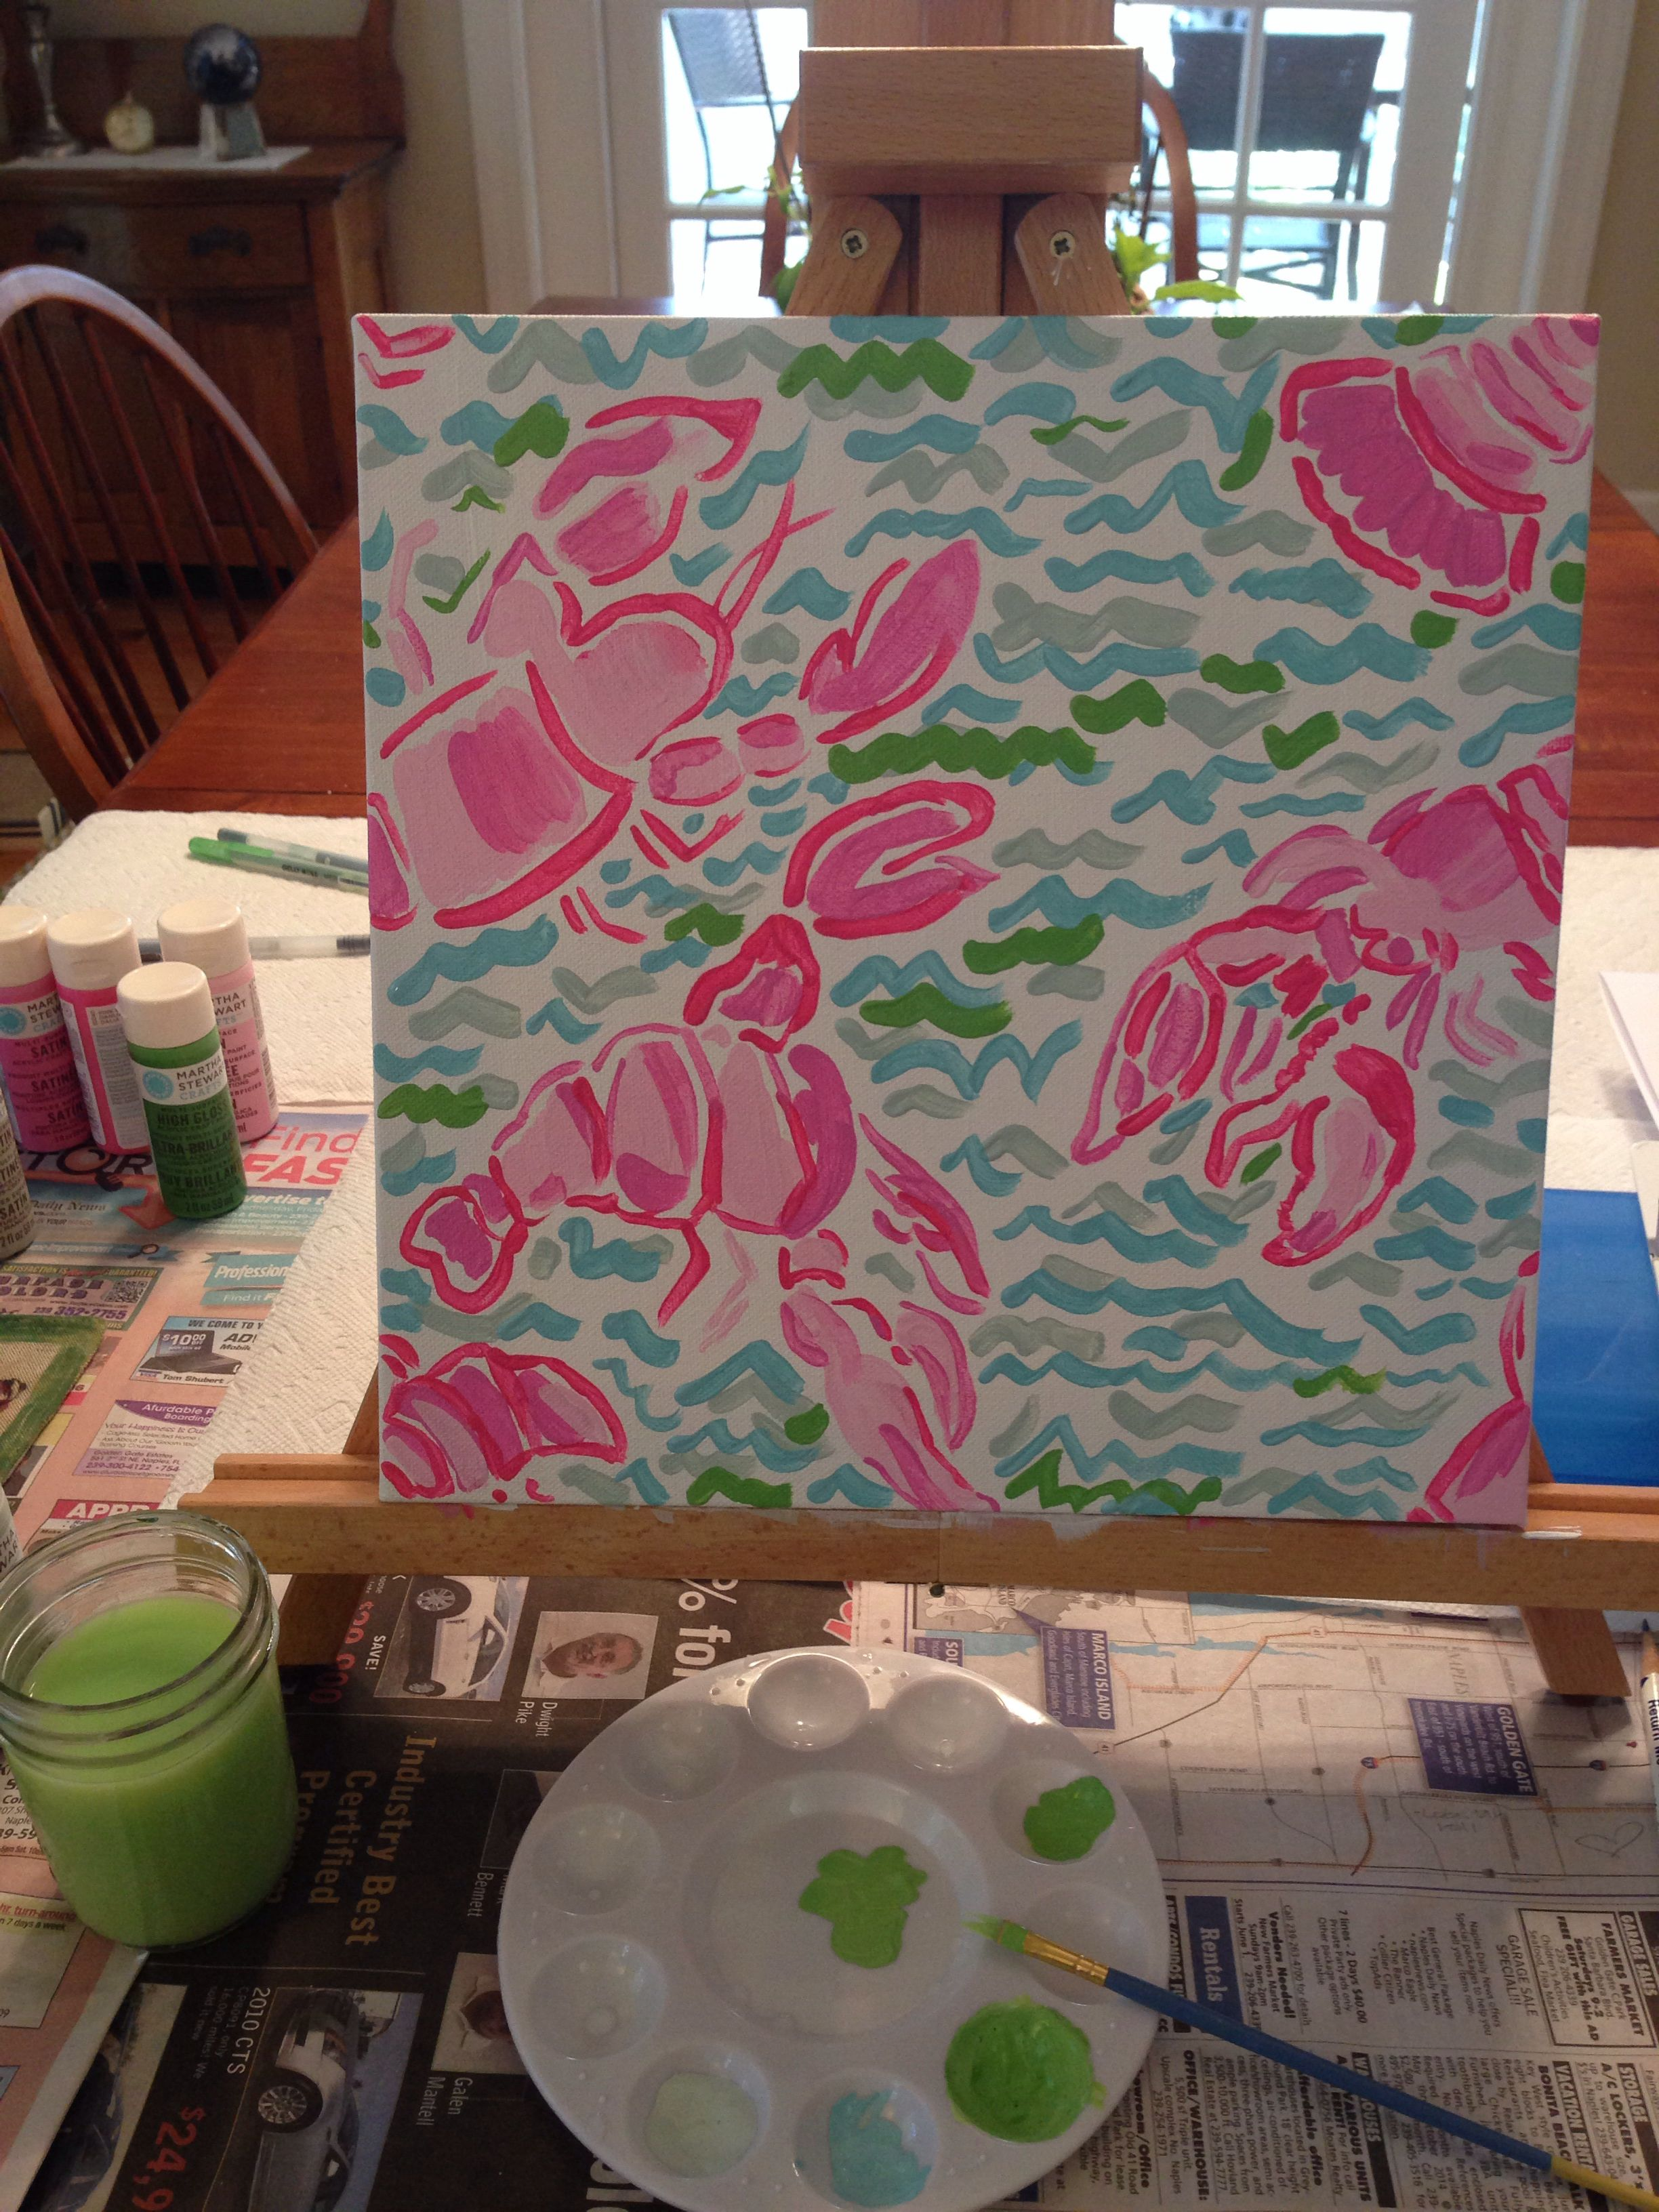 Lobstah Roll // Lilly Pulitzer inspired canvas painting.... I think ...